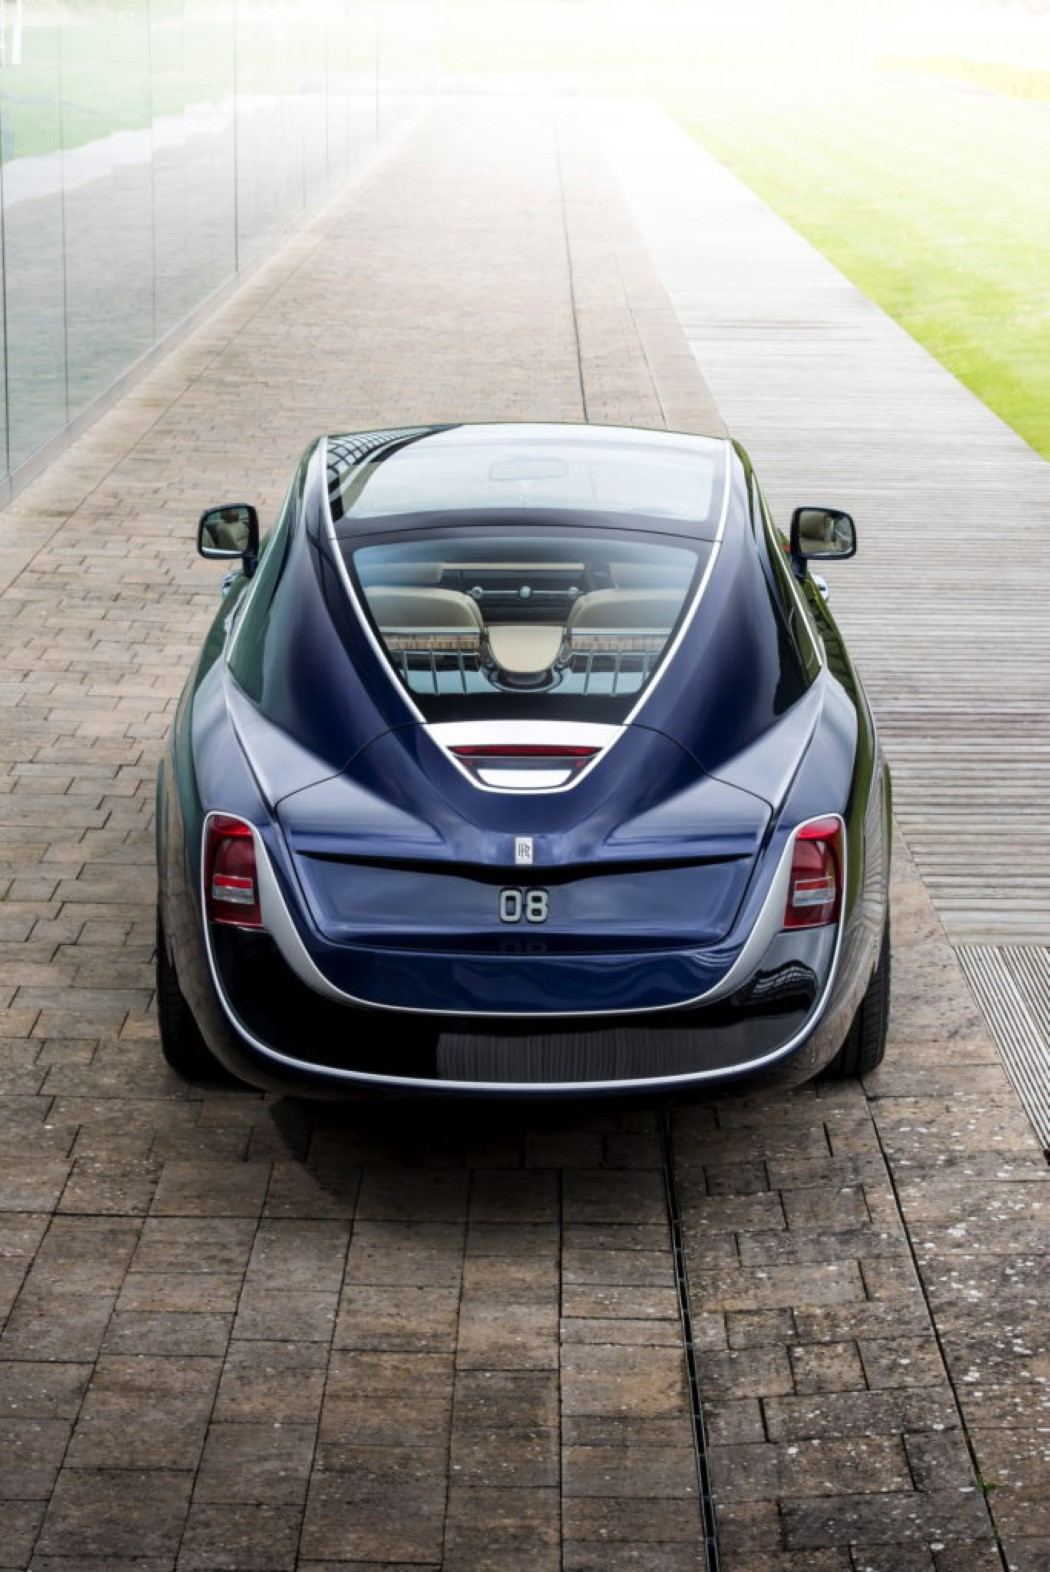 """Teofilo.net 